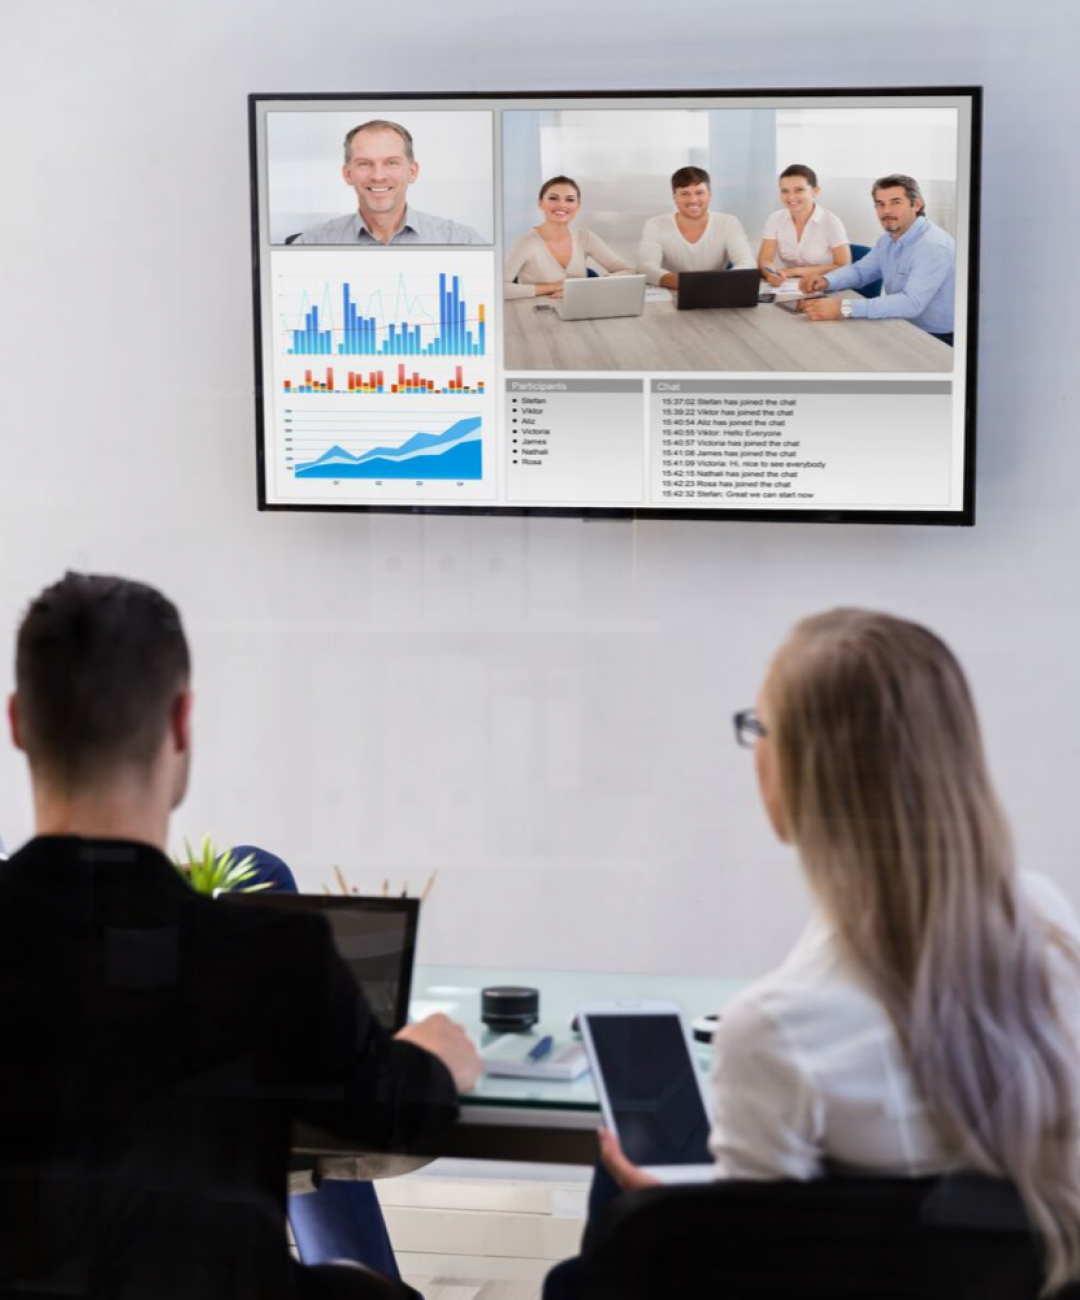 VIDEO CONFERENCING EQUIPMENT PCBs